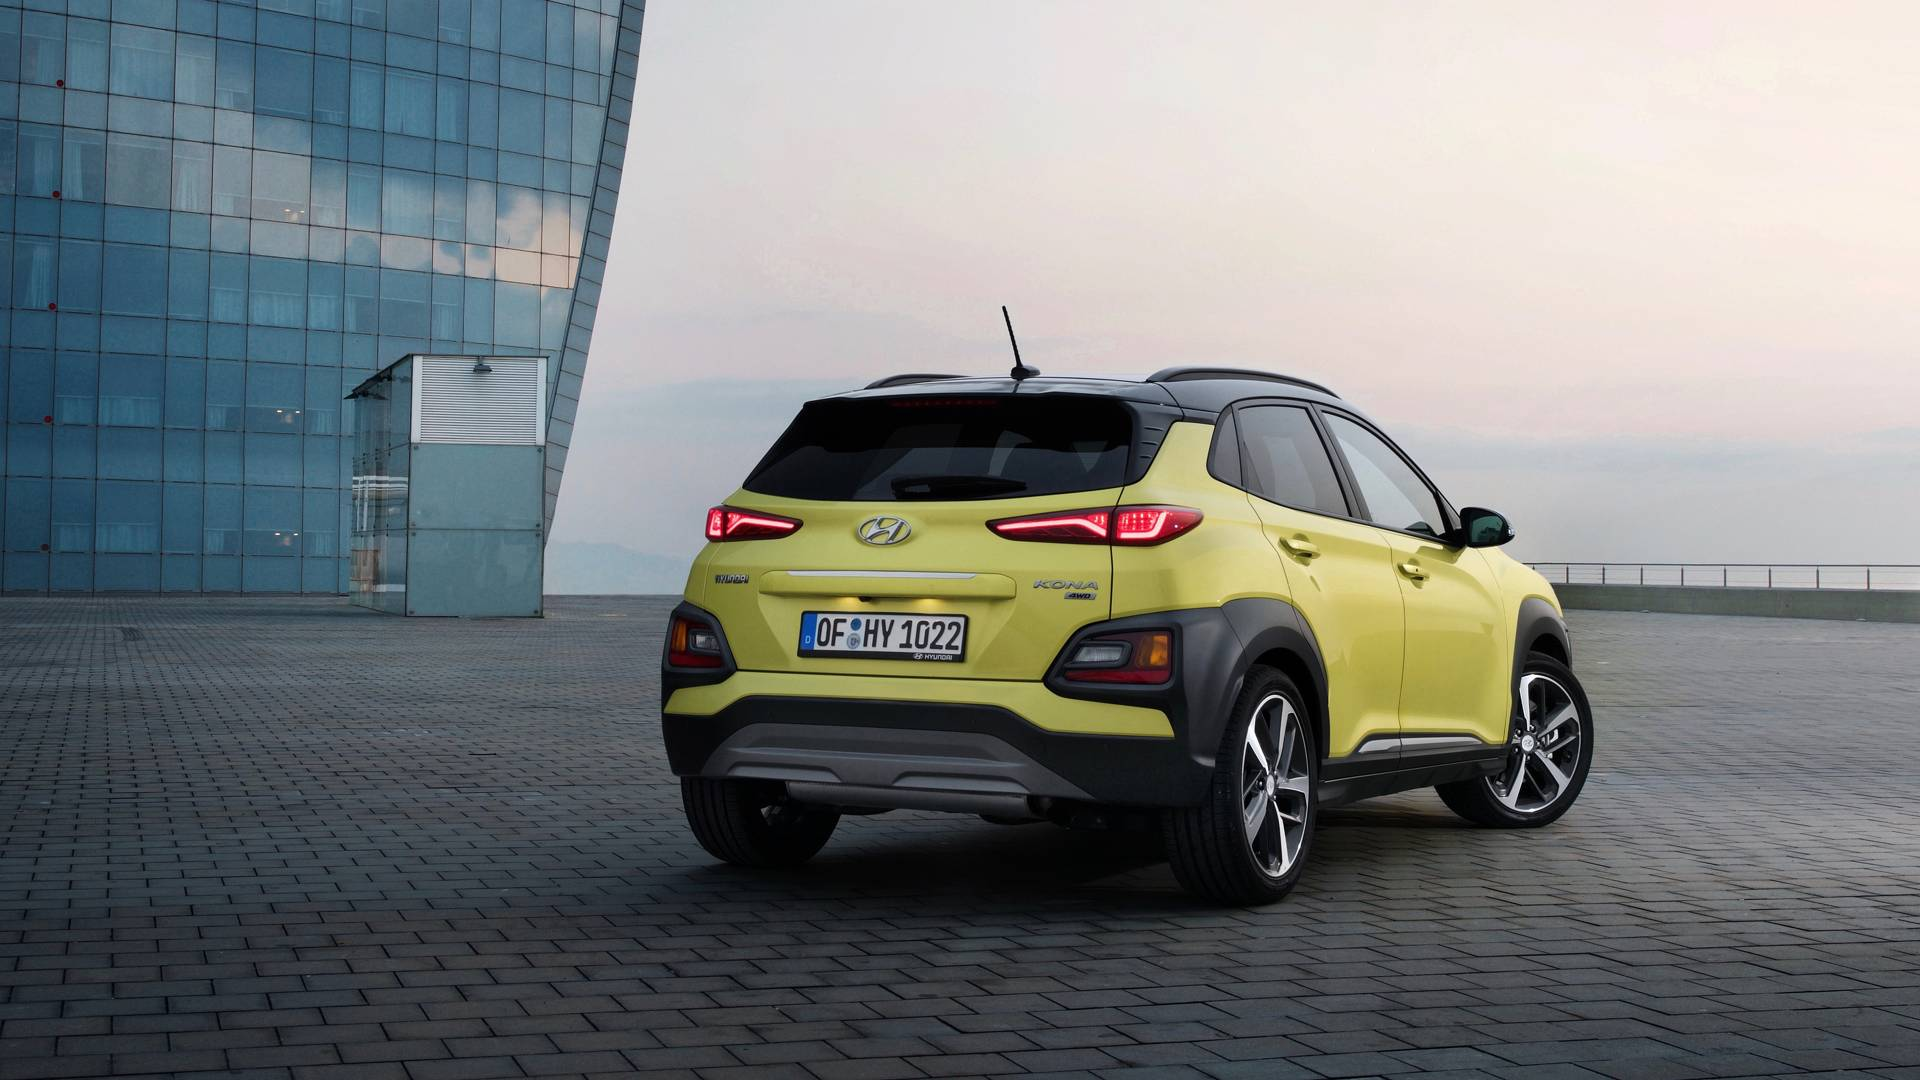 2017 Hyundai Kona 1 0 T-GDi first drive: Striking looks